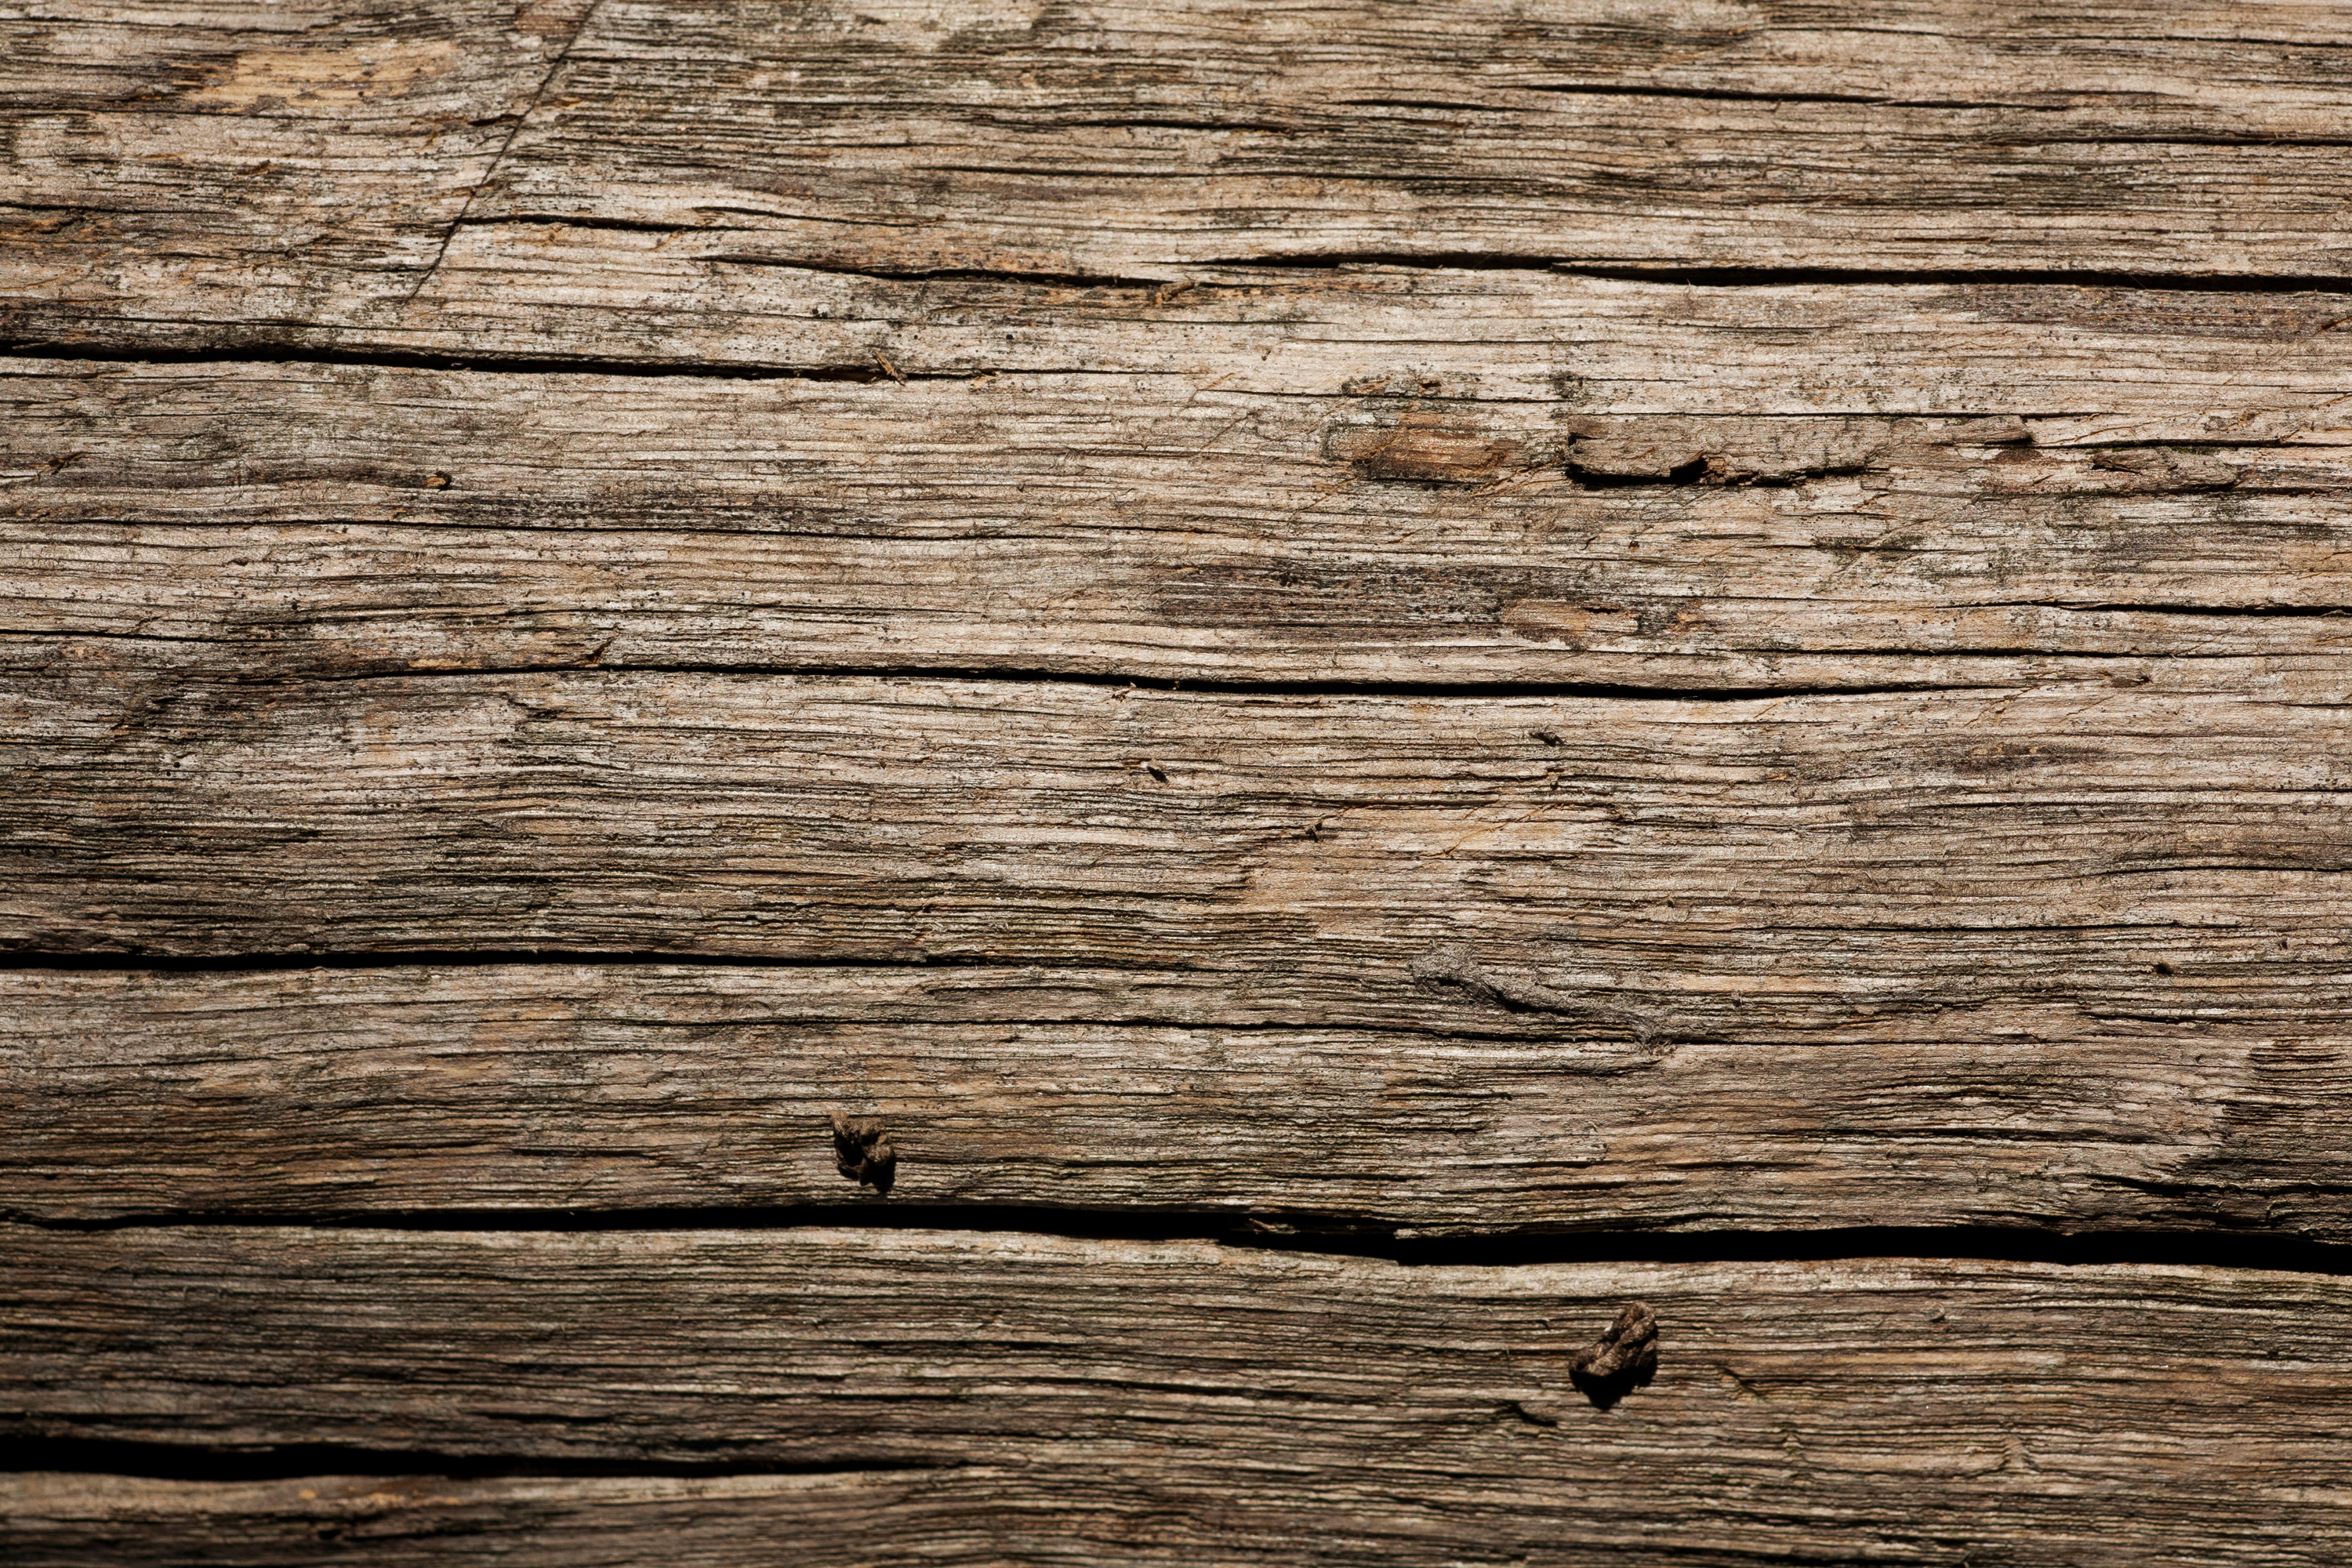 Dry Old Wood Texture Wild Textures No Bollocs Just Textures 3000x2000